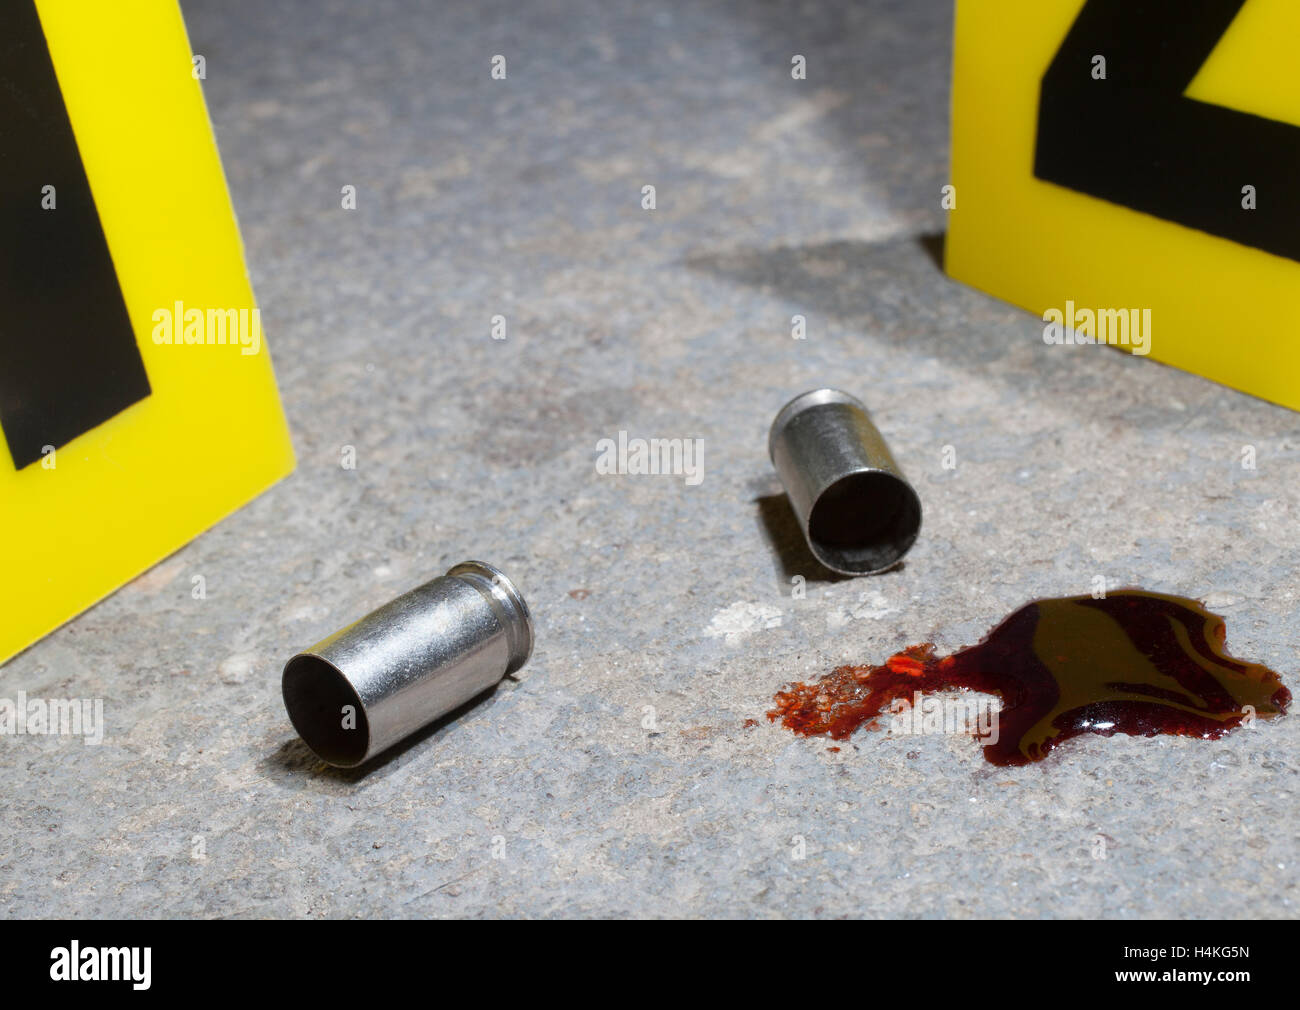 Ammunition and blood on concrete with evidence markers - Stock Image